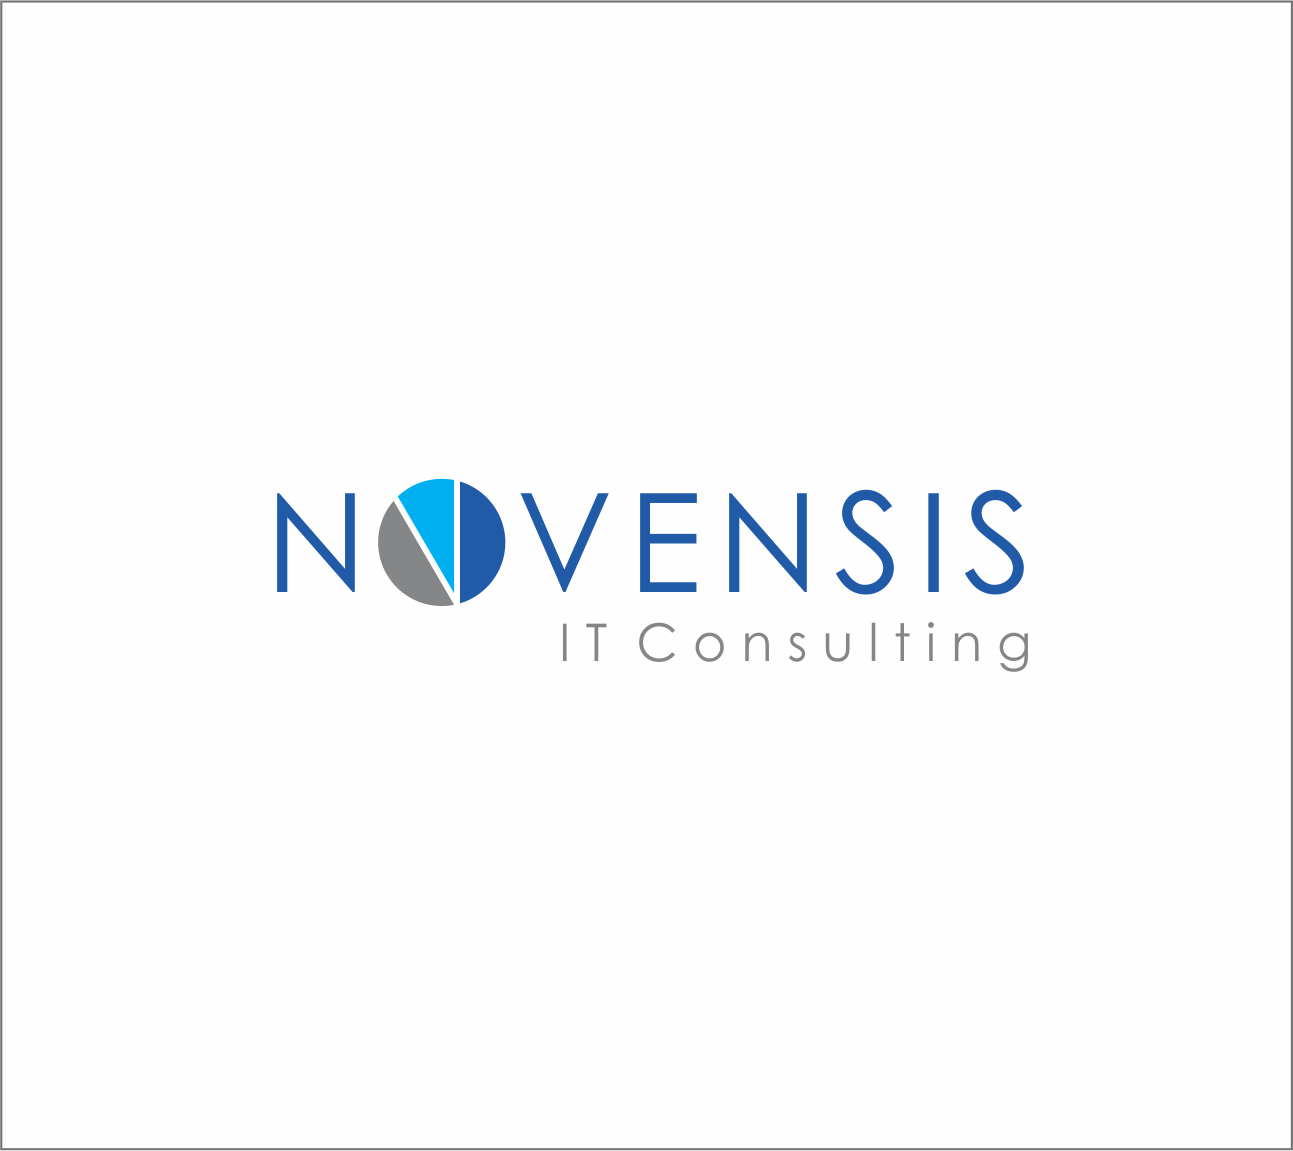 Logo Design by Armada Jamaluddin - Entry No. 178 in the Logo Design Contest Novensis Logo Design.